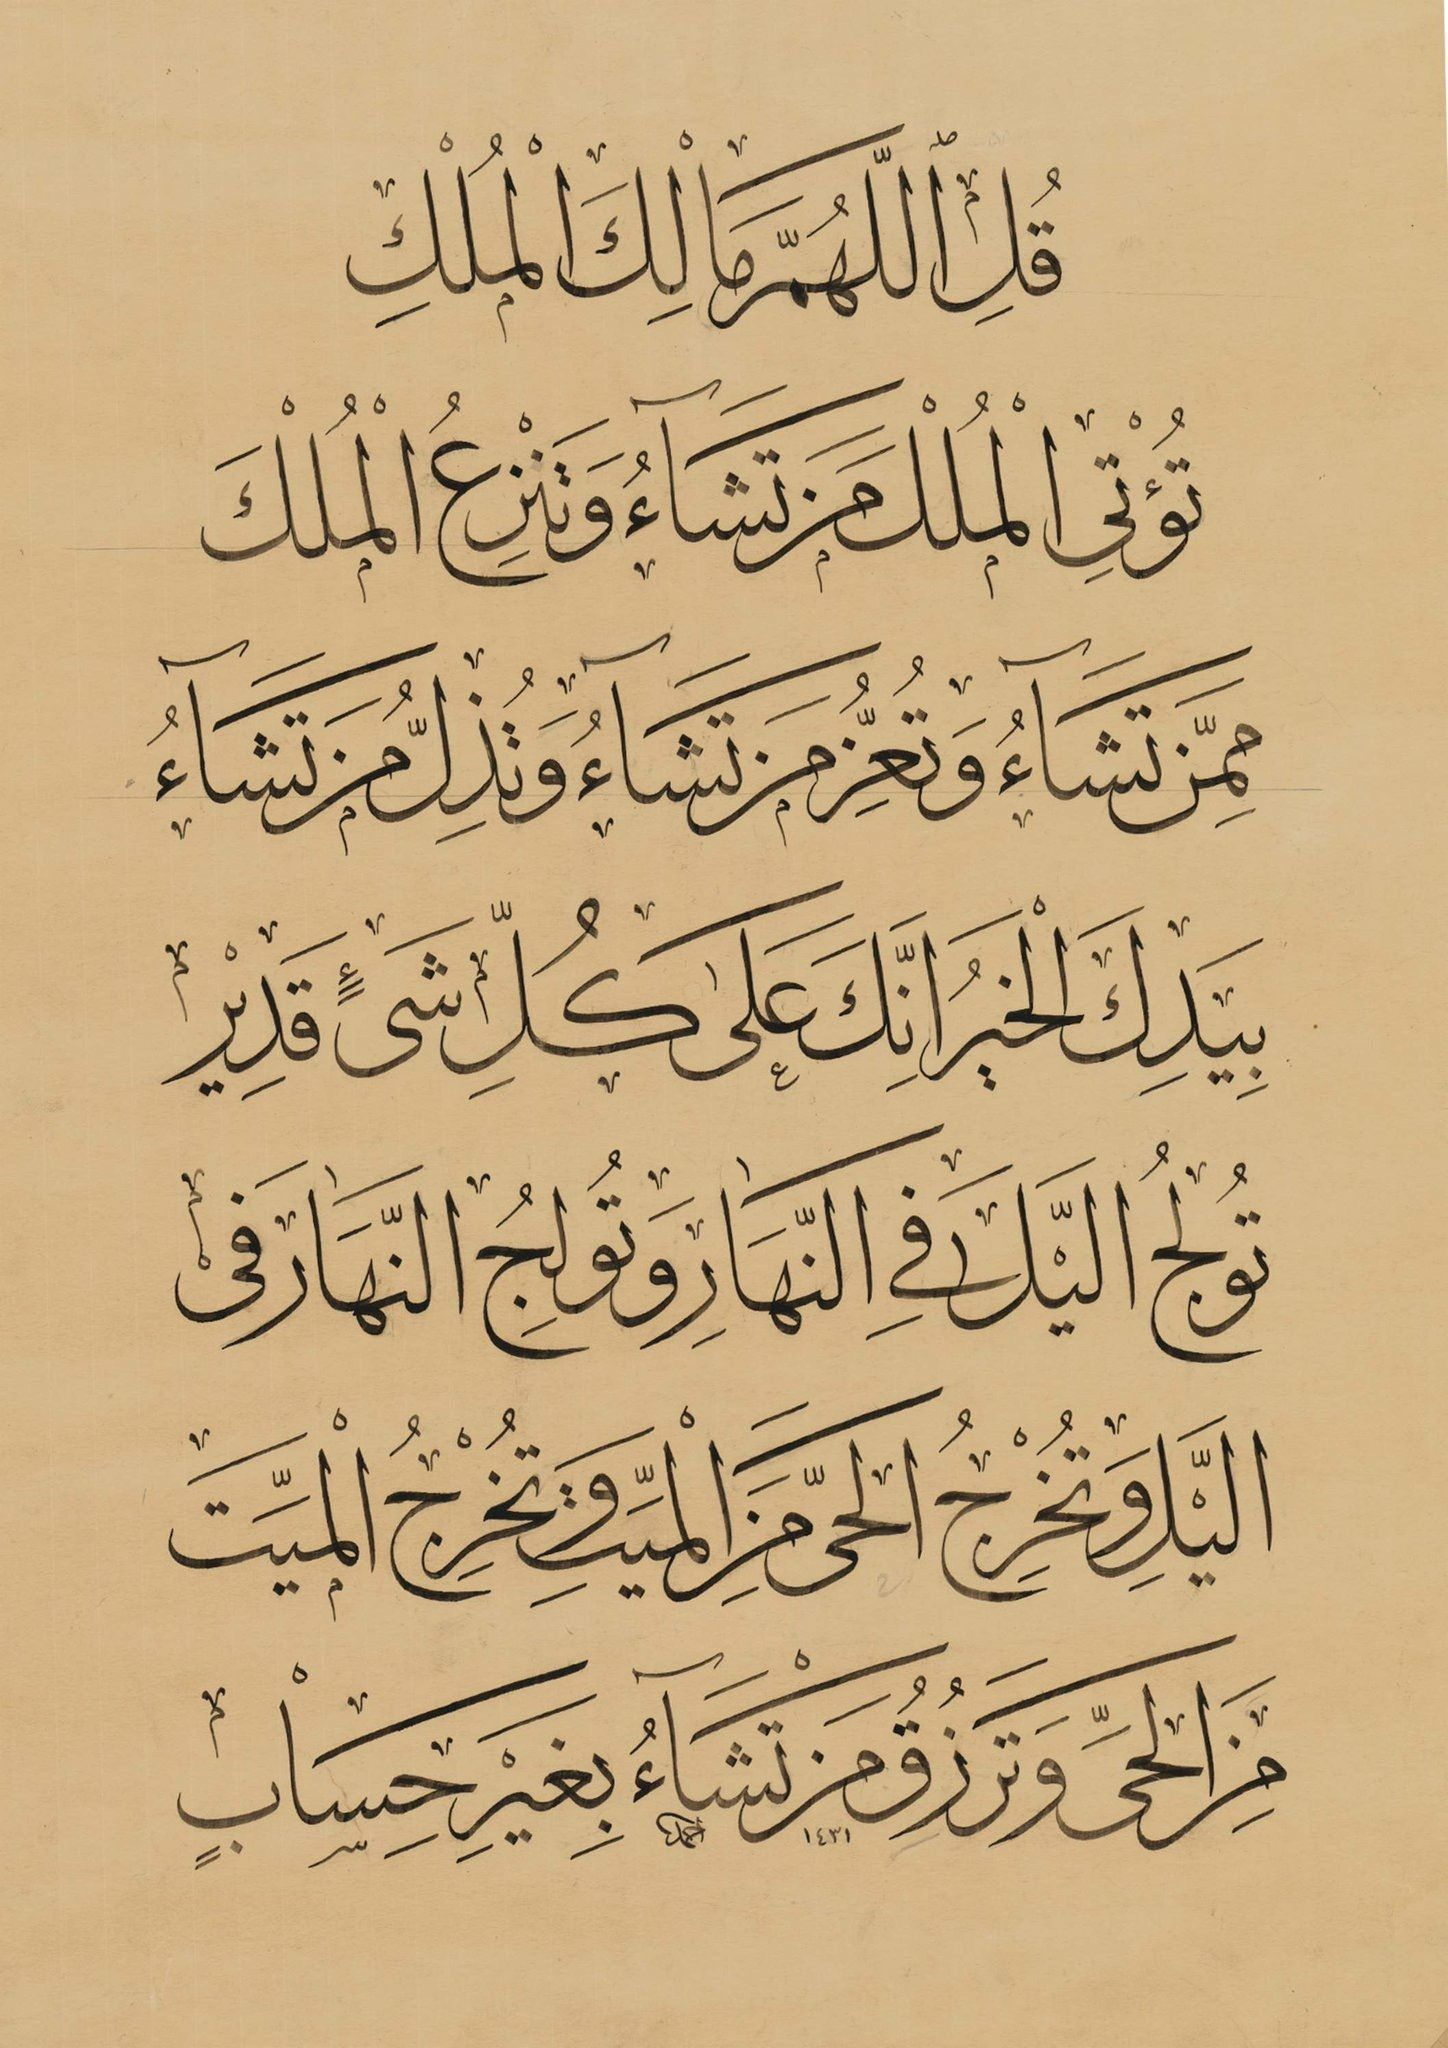 Pin By Mohamed Fotouh On ٣ سورة آل عمران Islamic Phrases Islamic Calligraphy Arabic Calligraphy Painting